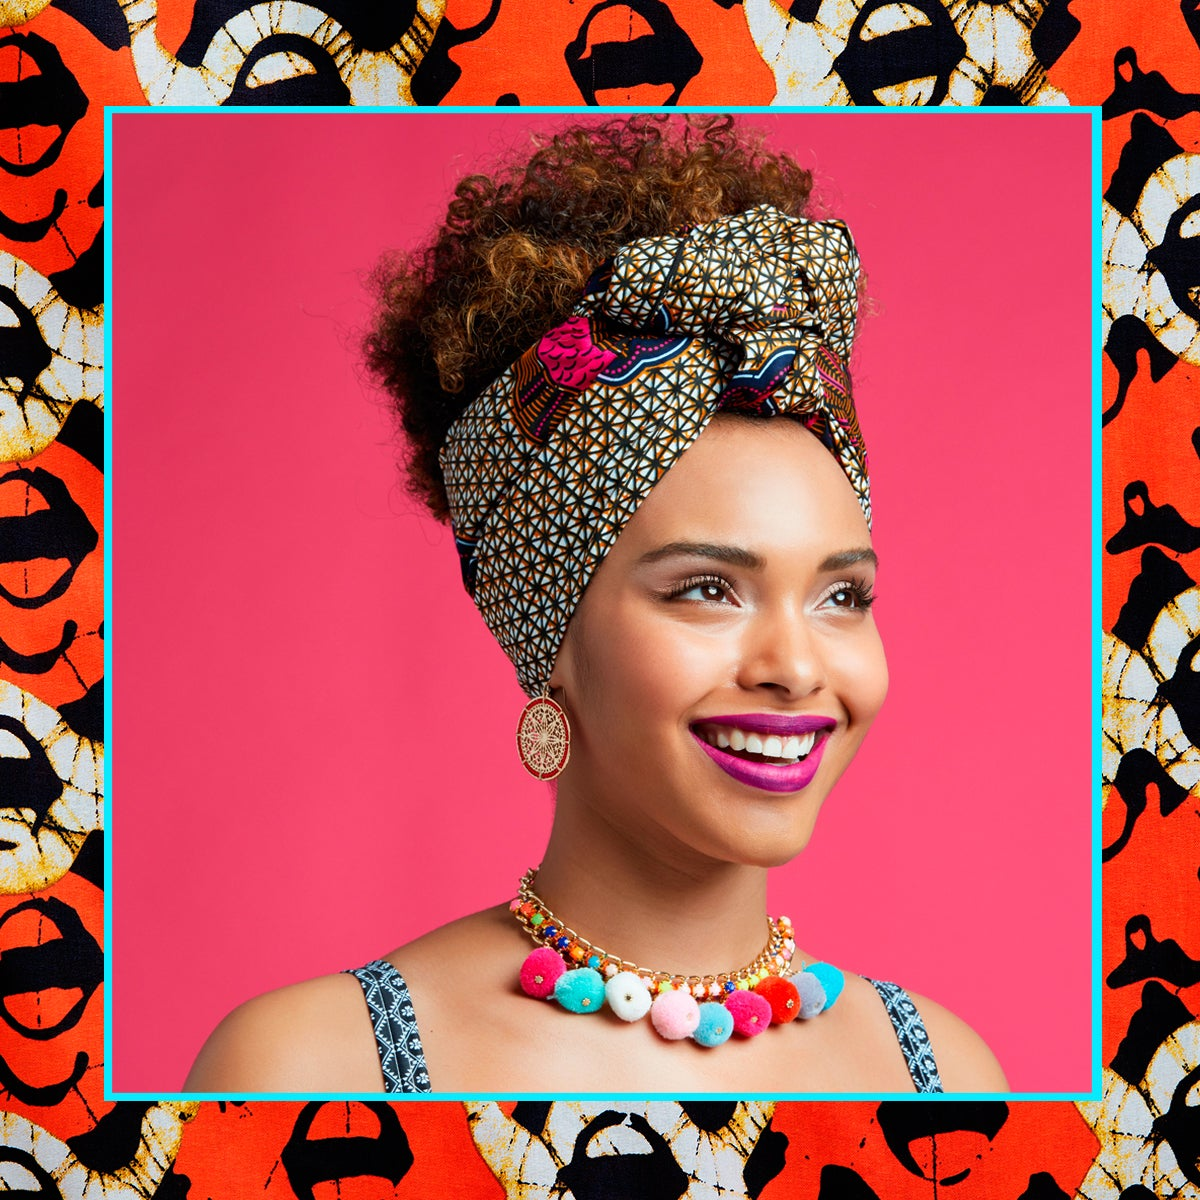 Head Wraps 101: How To Tie The Perfect Double Knot Head Wrap